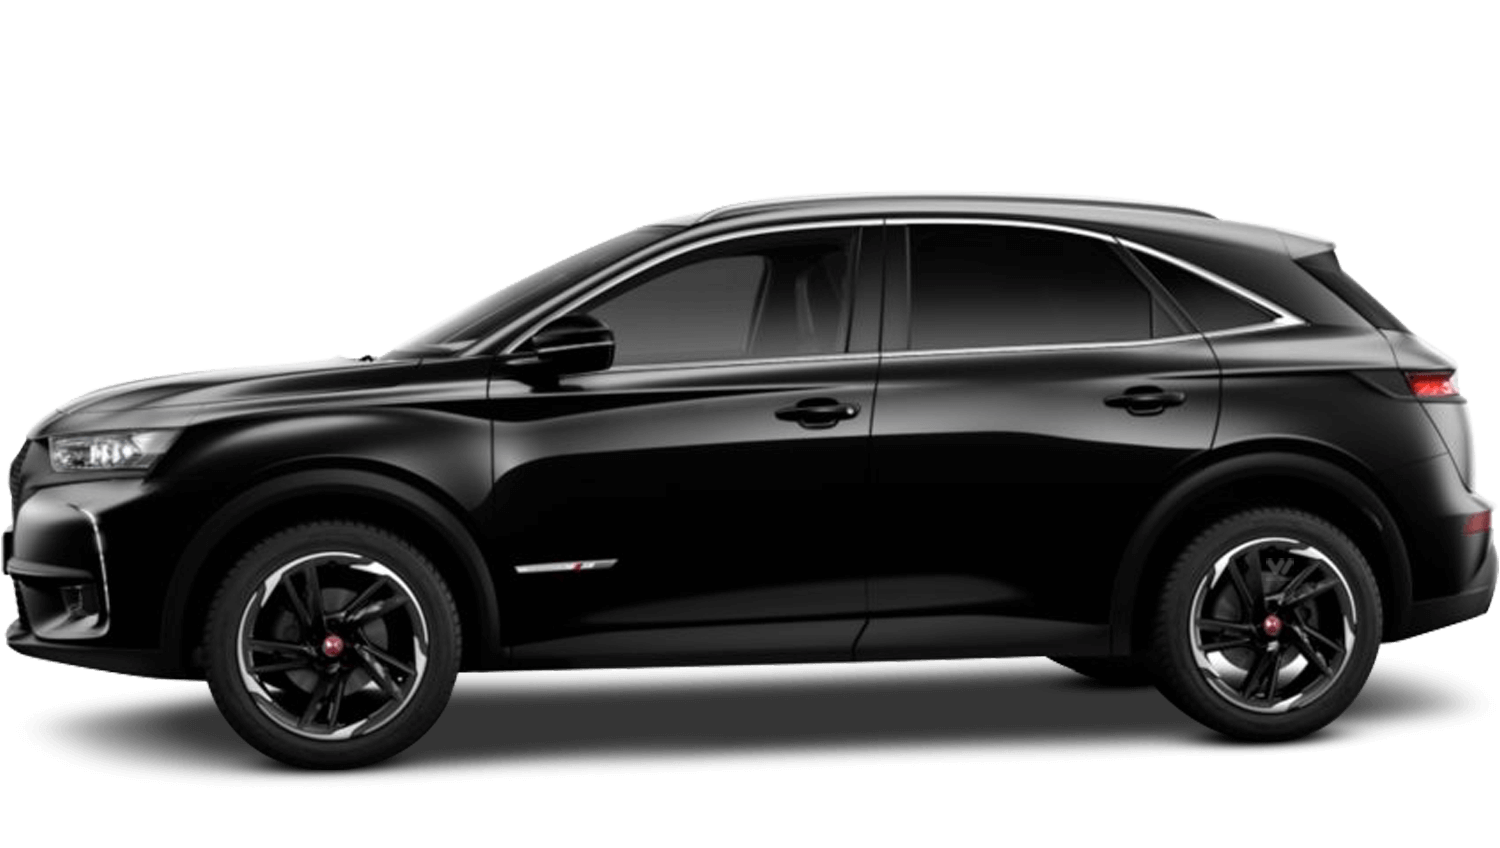 DS 7 CROSSBACK Leasing Offers